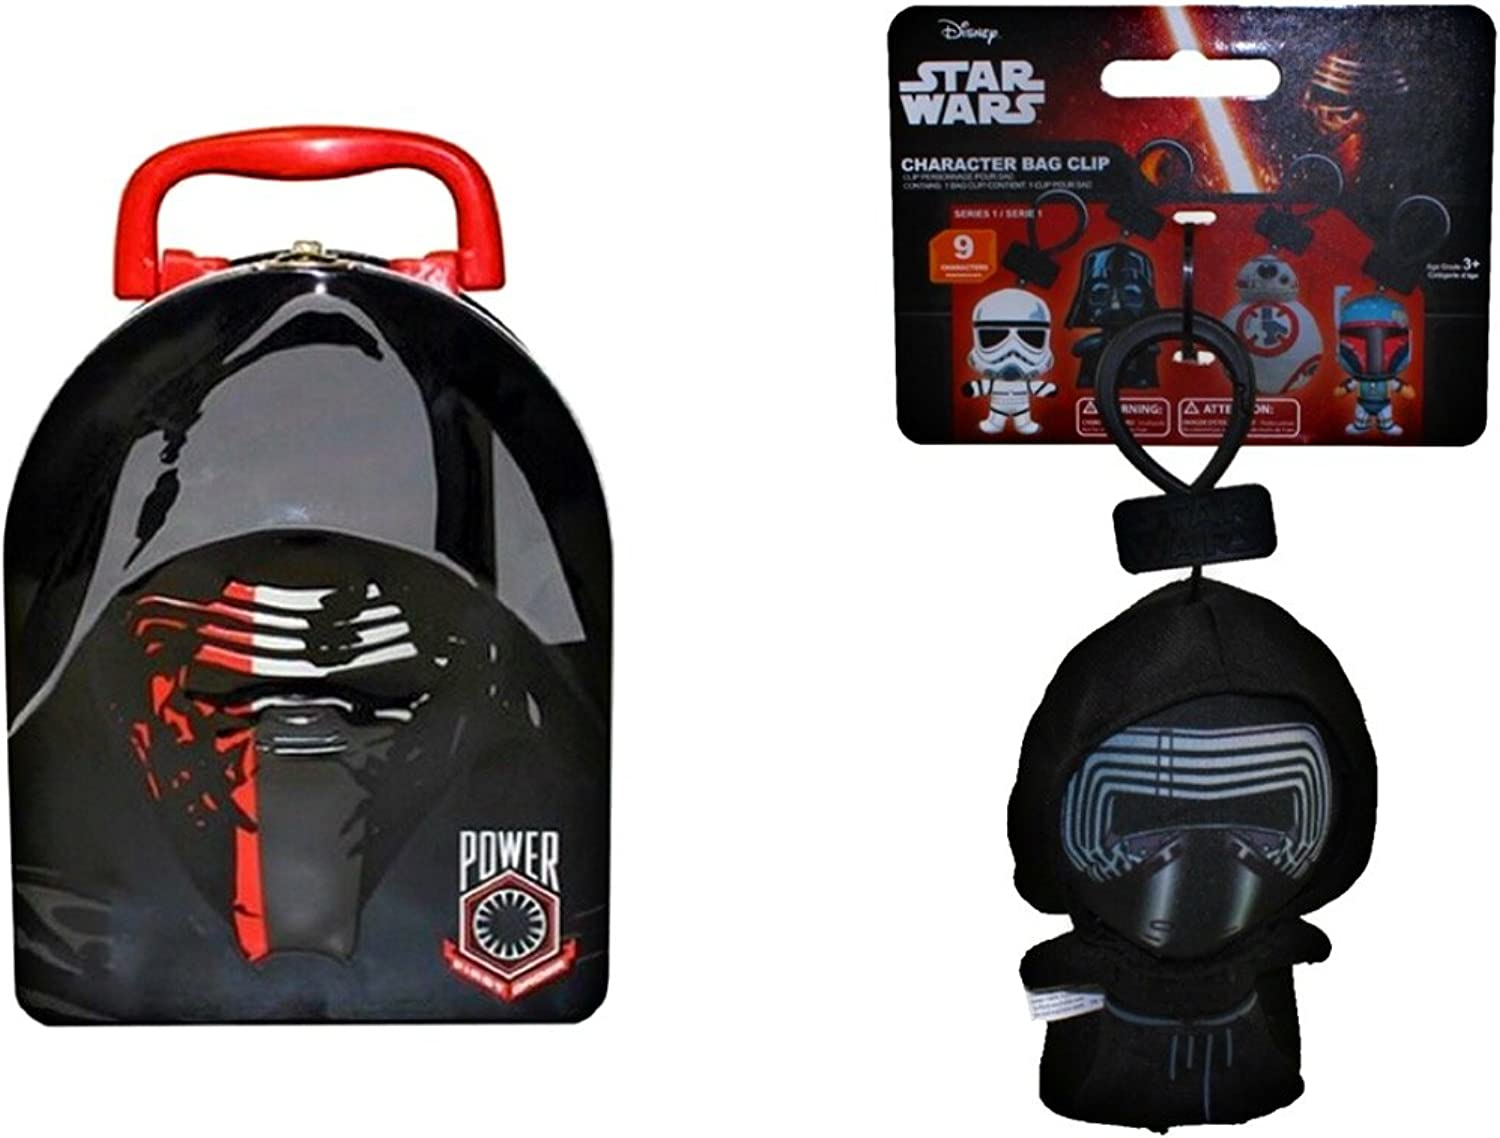 Star Wars The Force Awakens Embossed Tin Lunch Box with Plush Clip-On Bundle  (Kylo Ren)